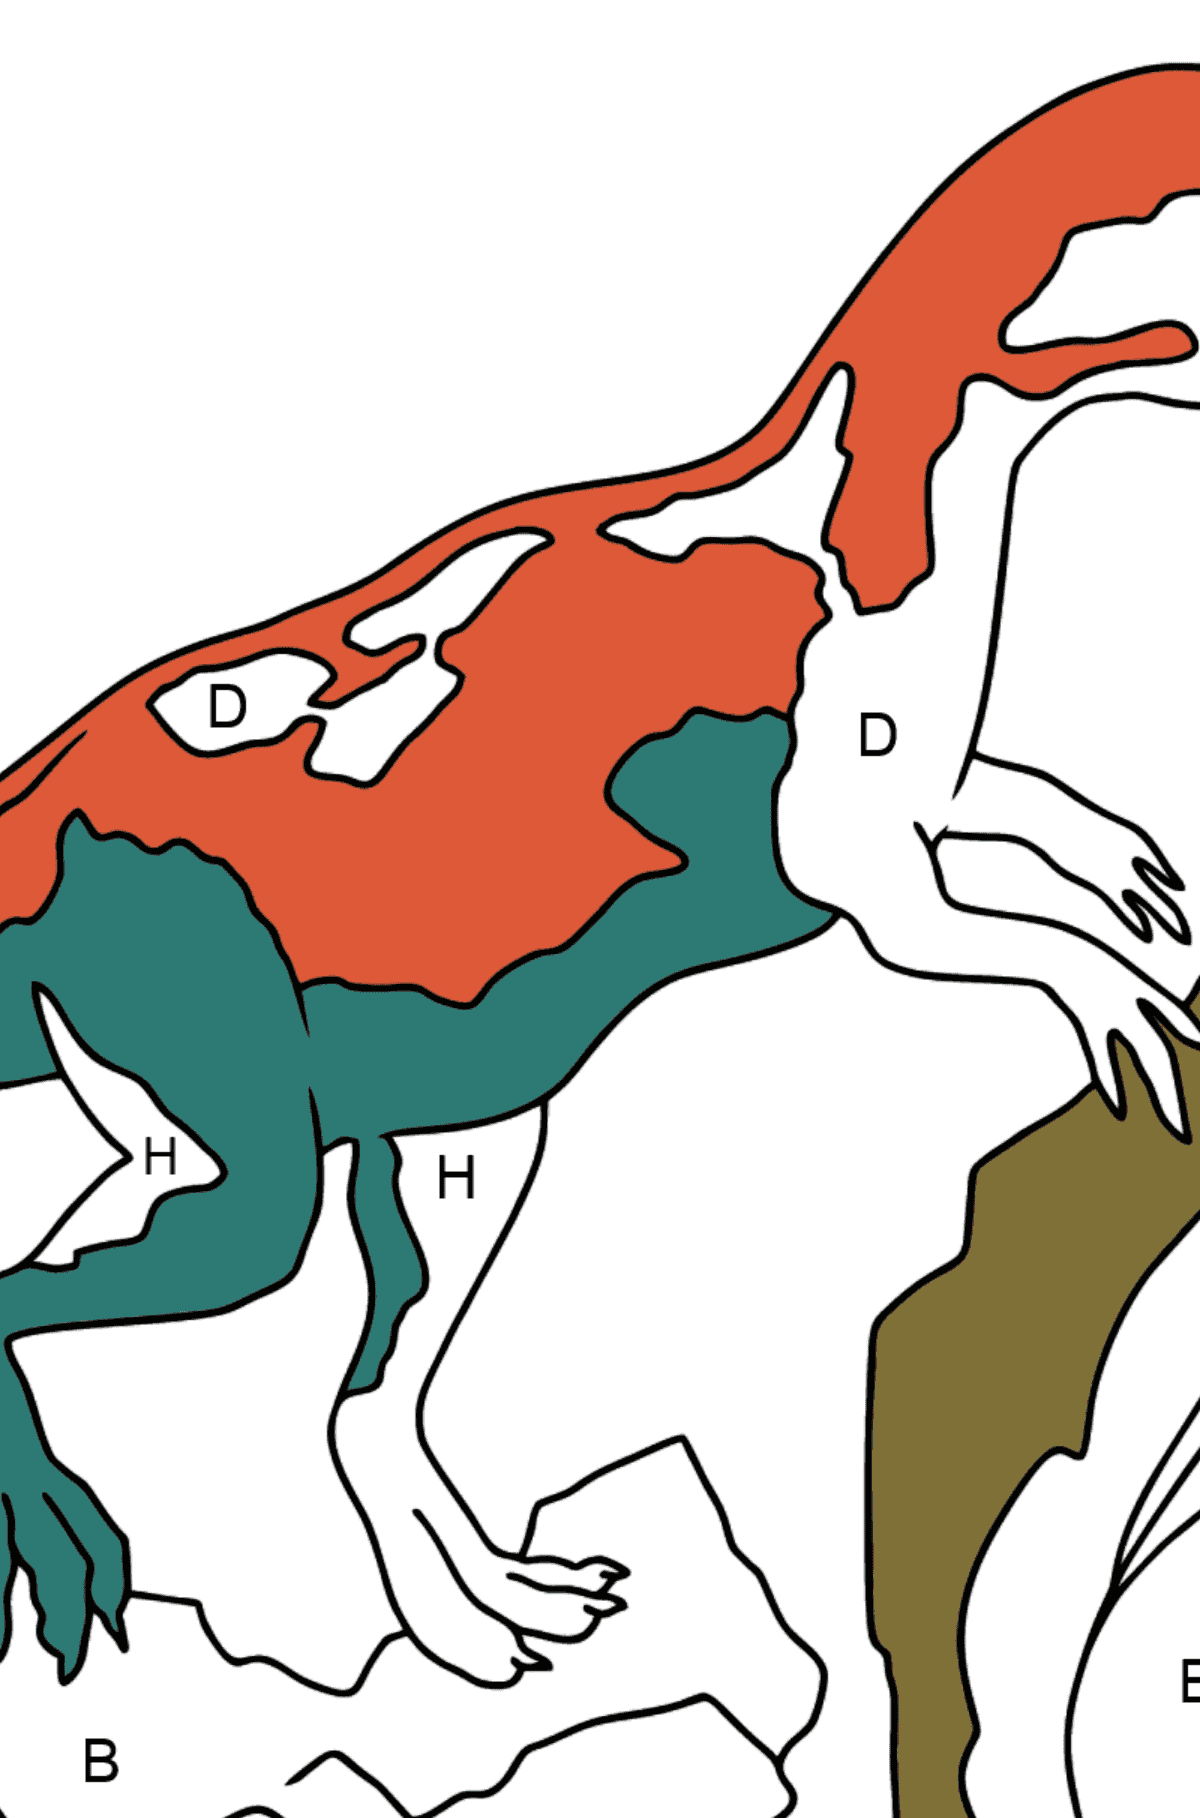 Coloring Page - Allosaurus - Jurassic Dinosaur - Coloring by Letters for Kids